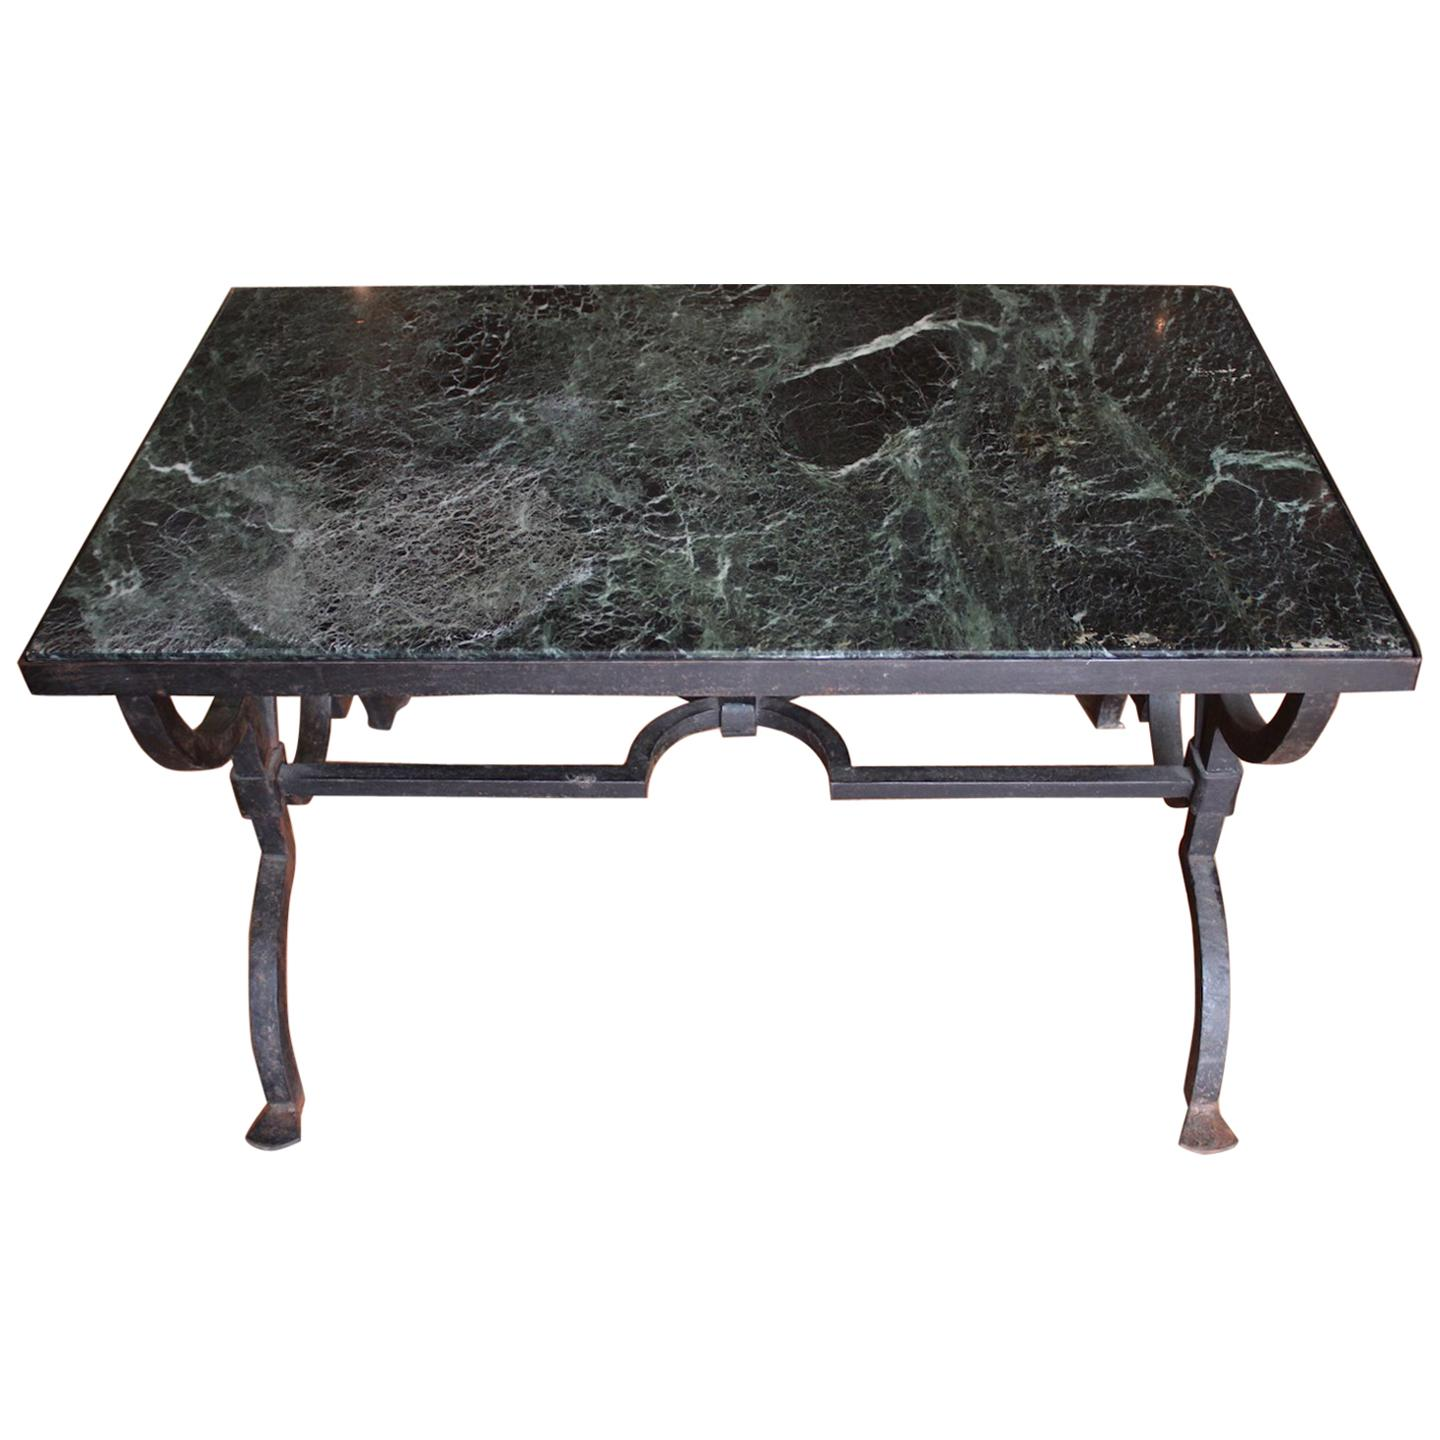 Gilbert Poillerat Wrought Iron Coffee Table, Circa 1940